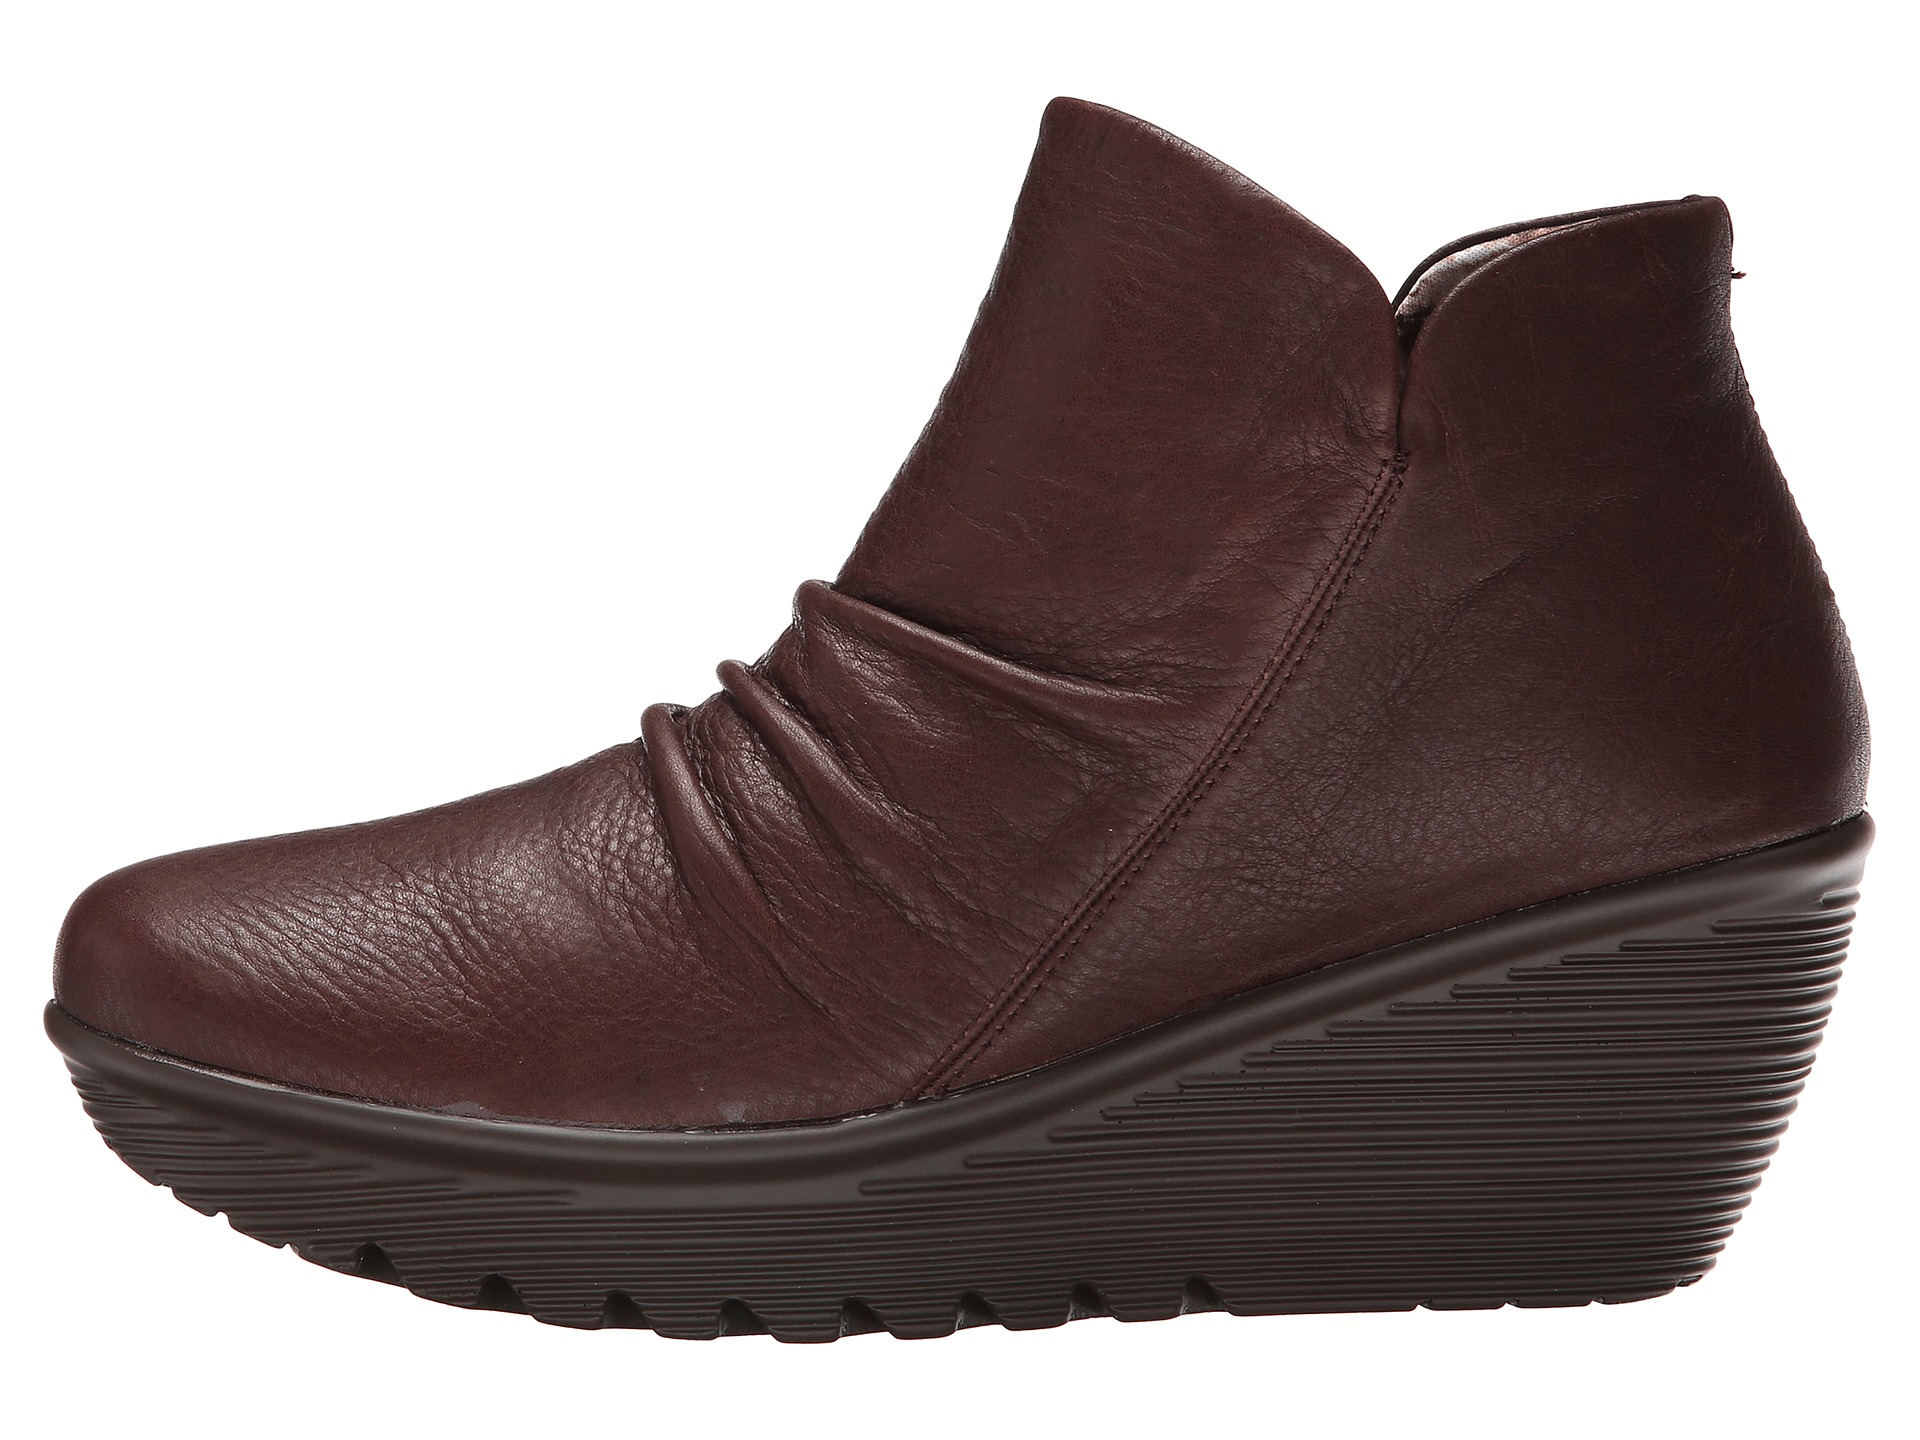 buy skechers wedge boots gt off70 discounted